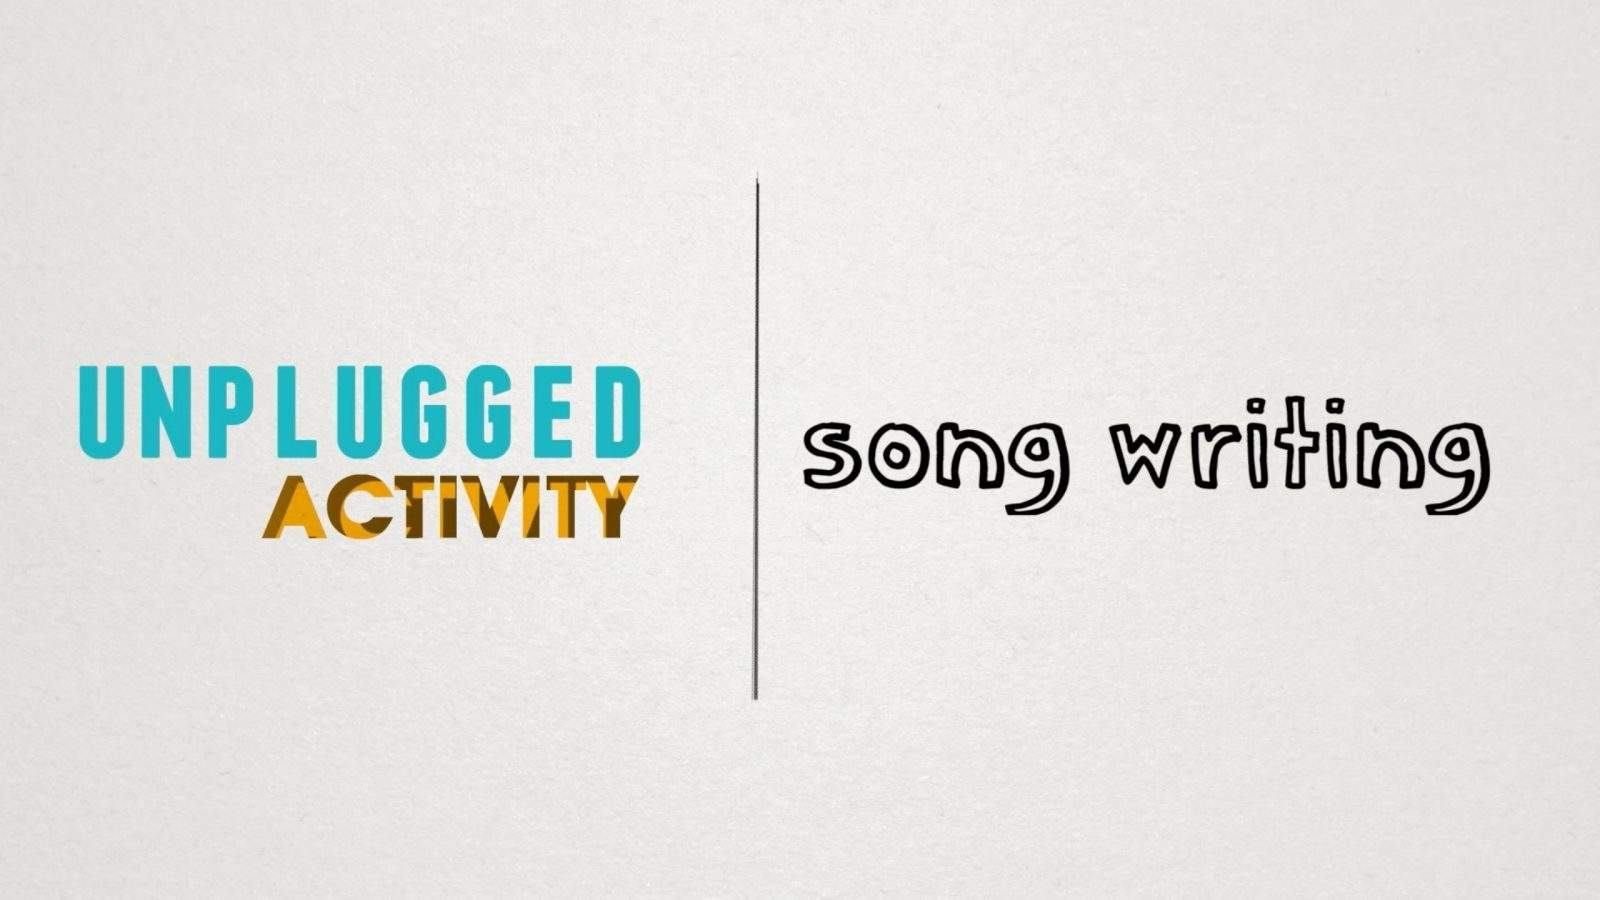 songwriting logo